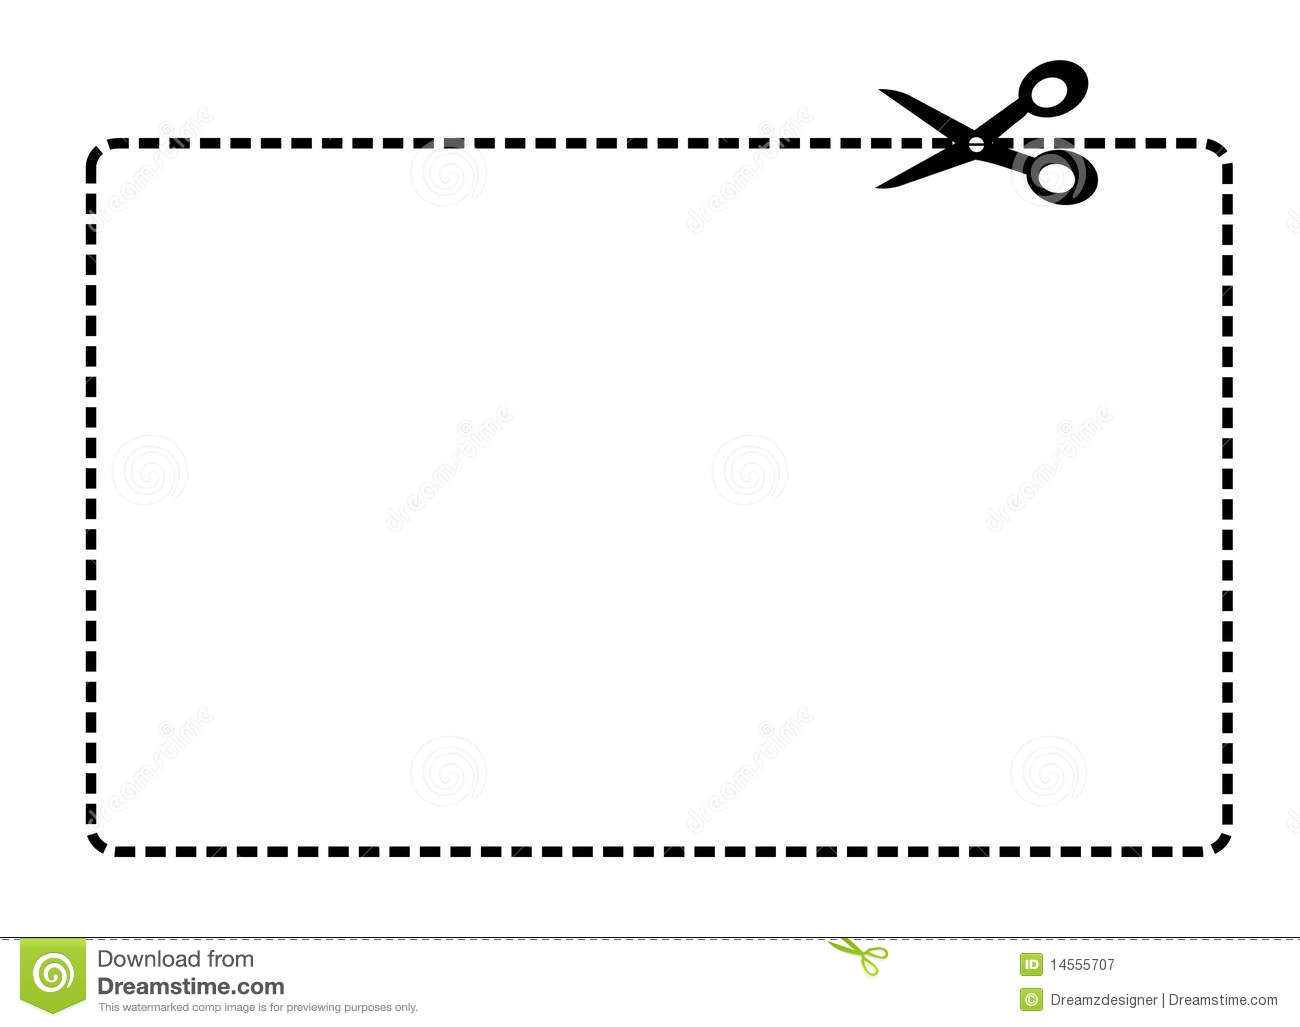 Coupon Border Vector Royalty Free Stock -Coupon Border Vector Royalty Free Stock Photography Image 14555707-15